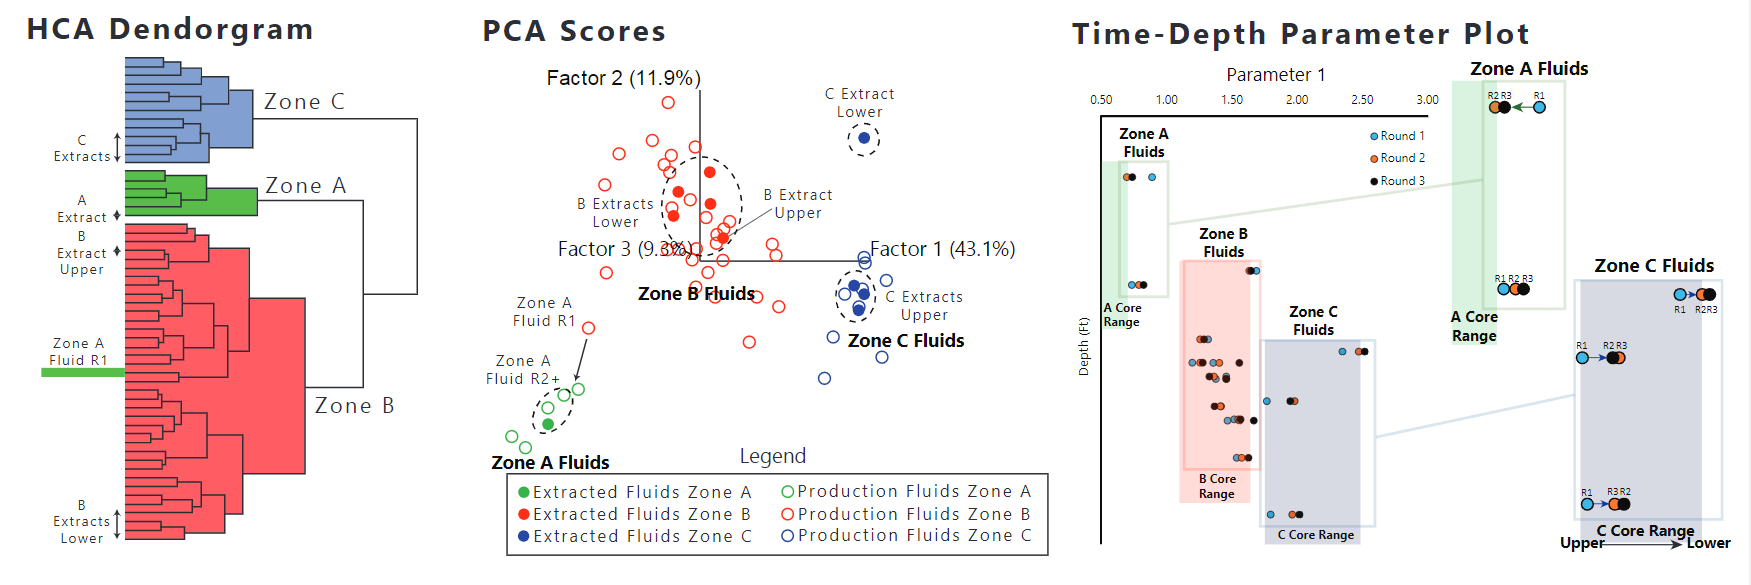 unconventional play in the USA with three target zone